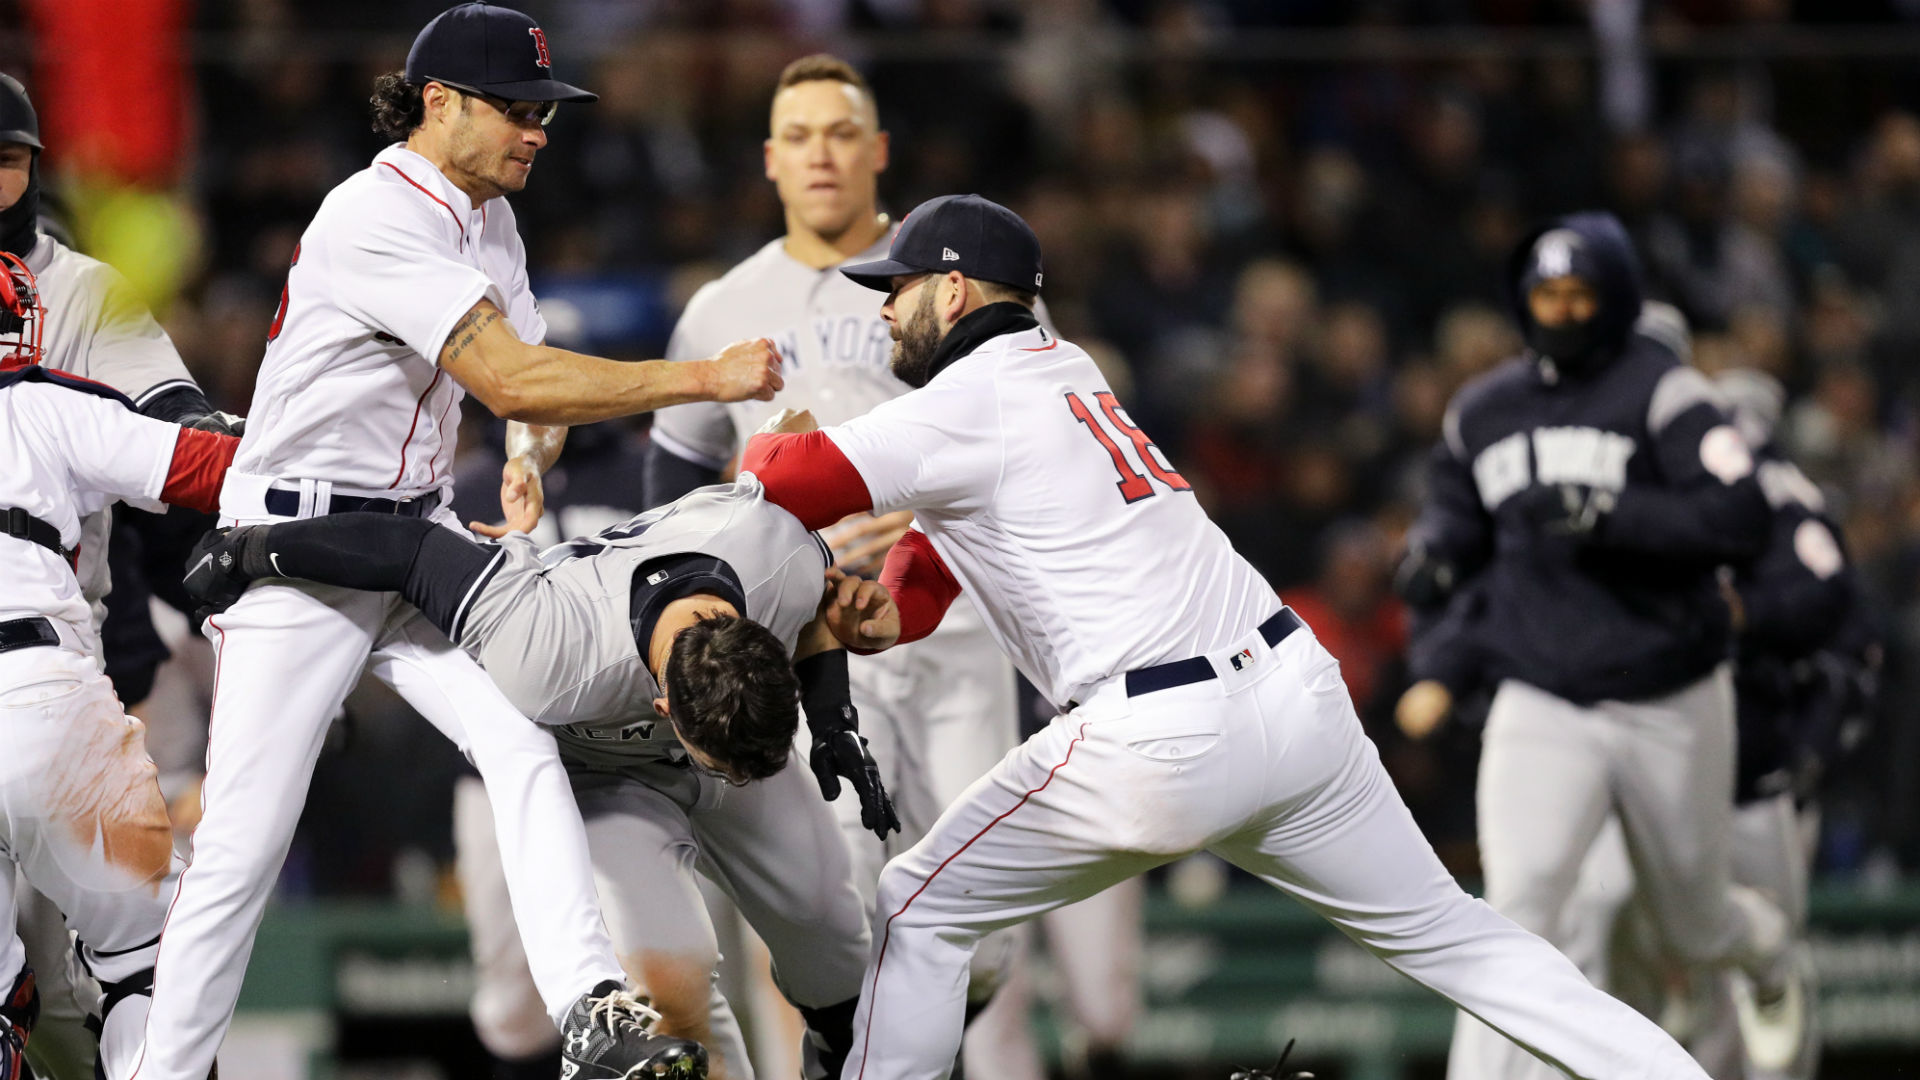 A Brief History of Yankees-Red Sox Brawls